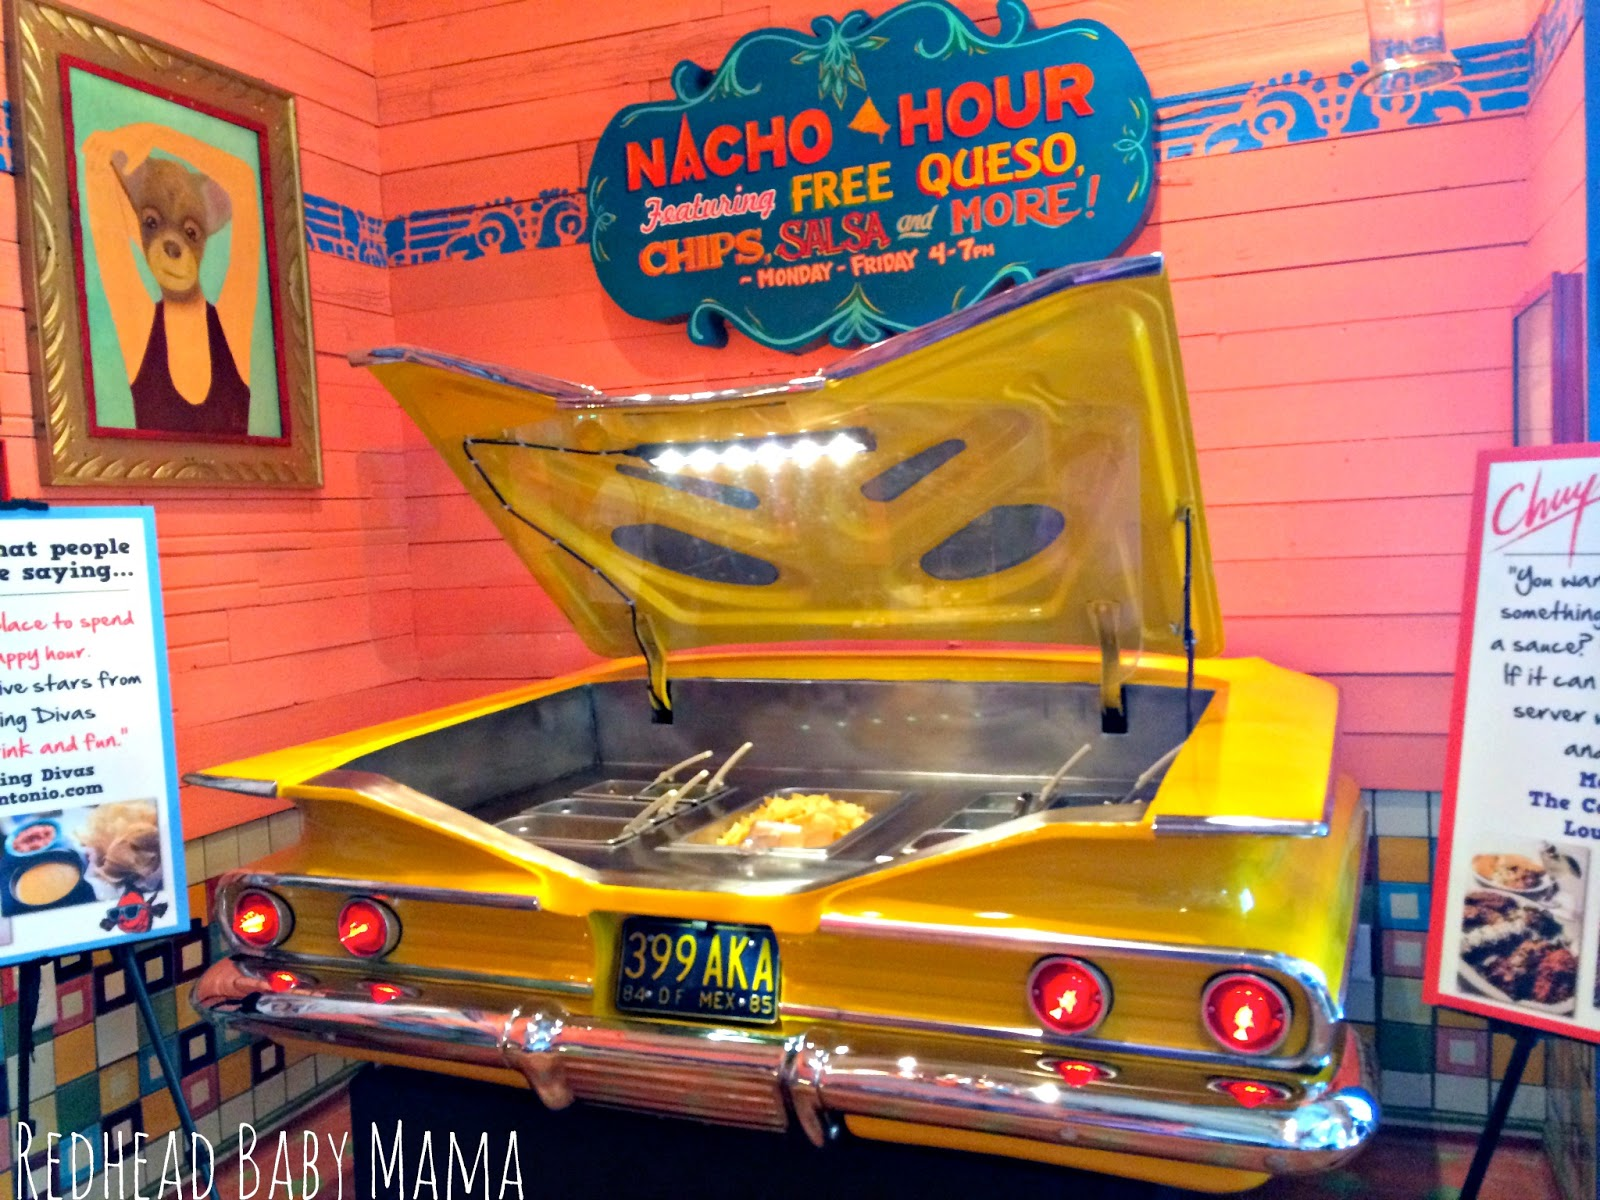 Chuy's Happy Hour for Margaritas, Martinis, and Free Queso  Tabelog